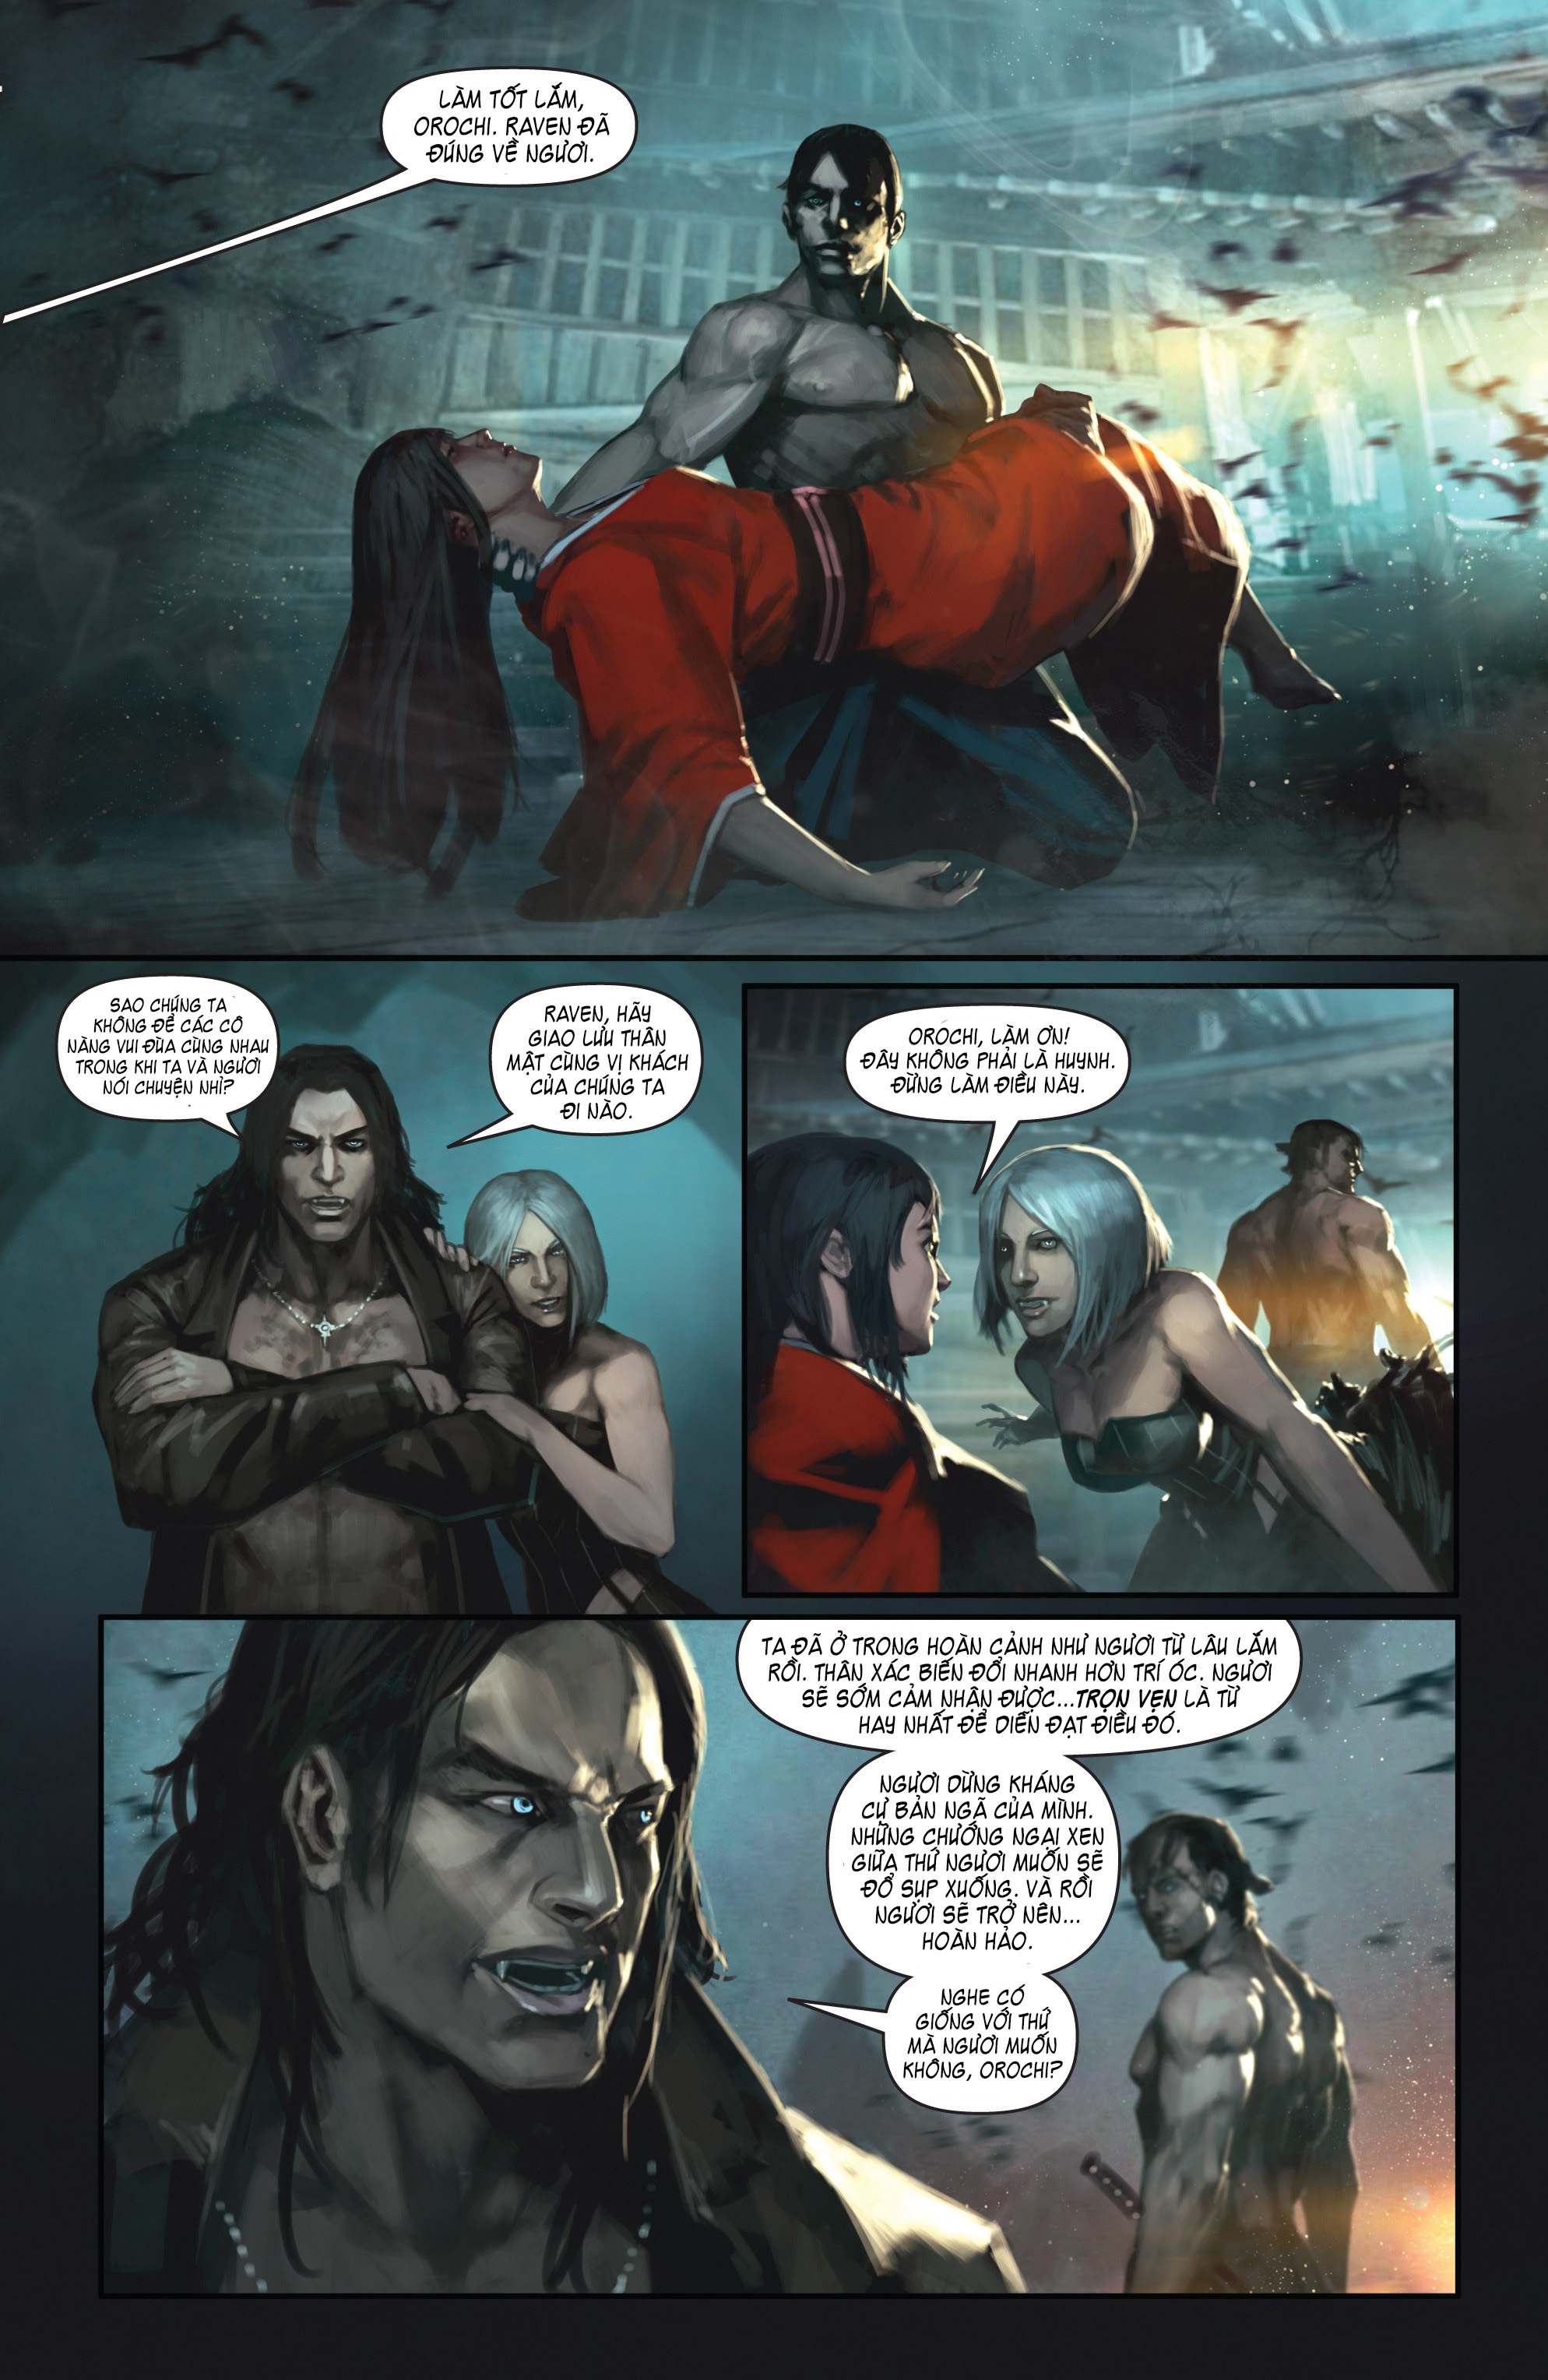 BUSHIDO - THE WAY OF THE WARRIOR chapter 4 trang 7